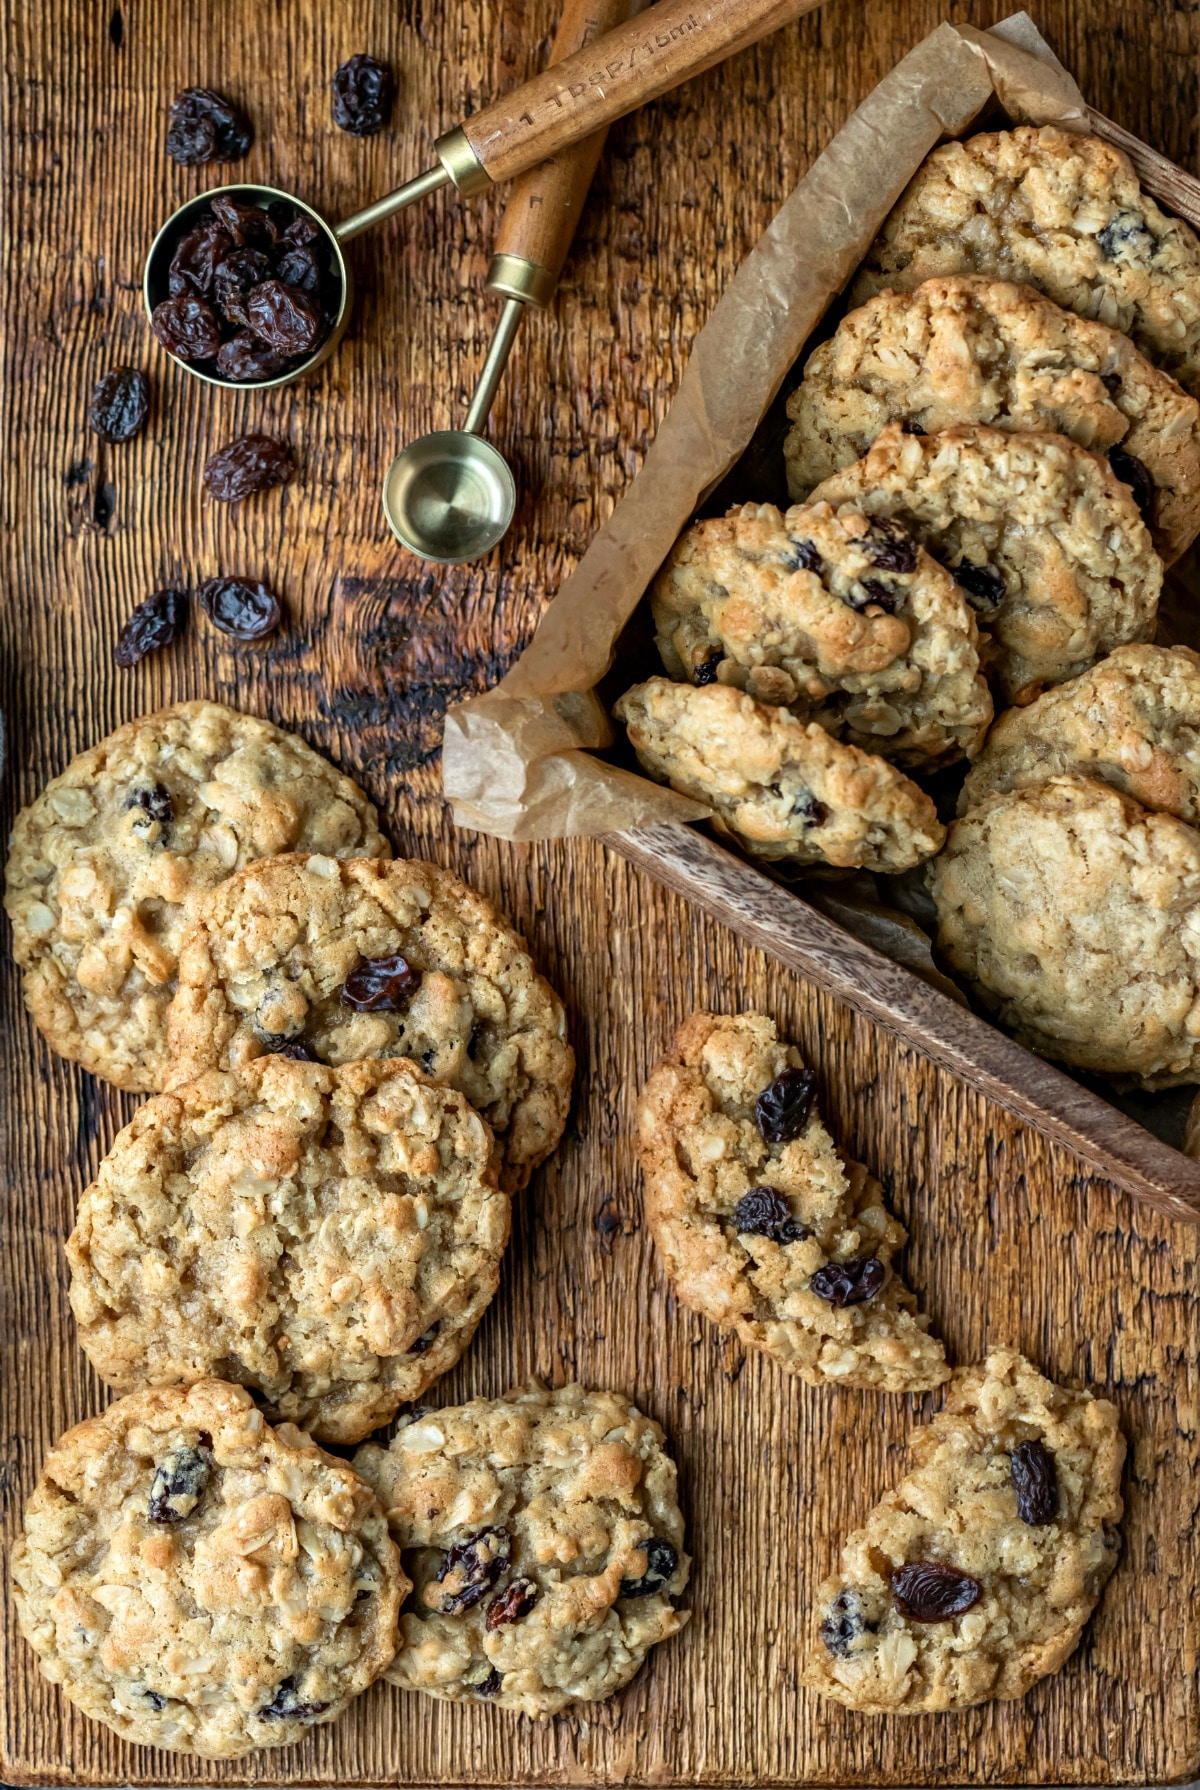 Overhead photo of oatmeal raisin cookies on a wooden cutting board